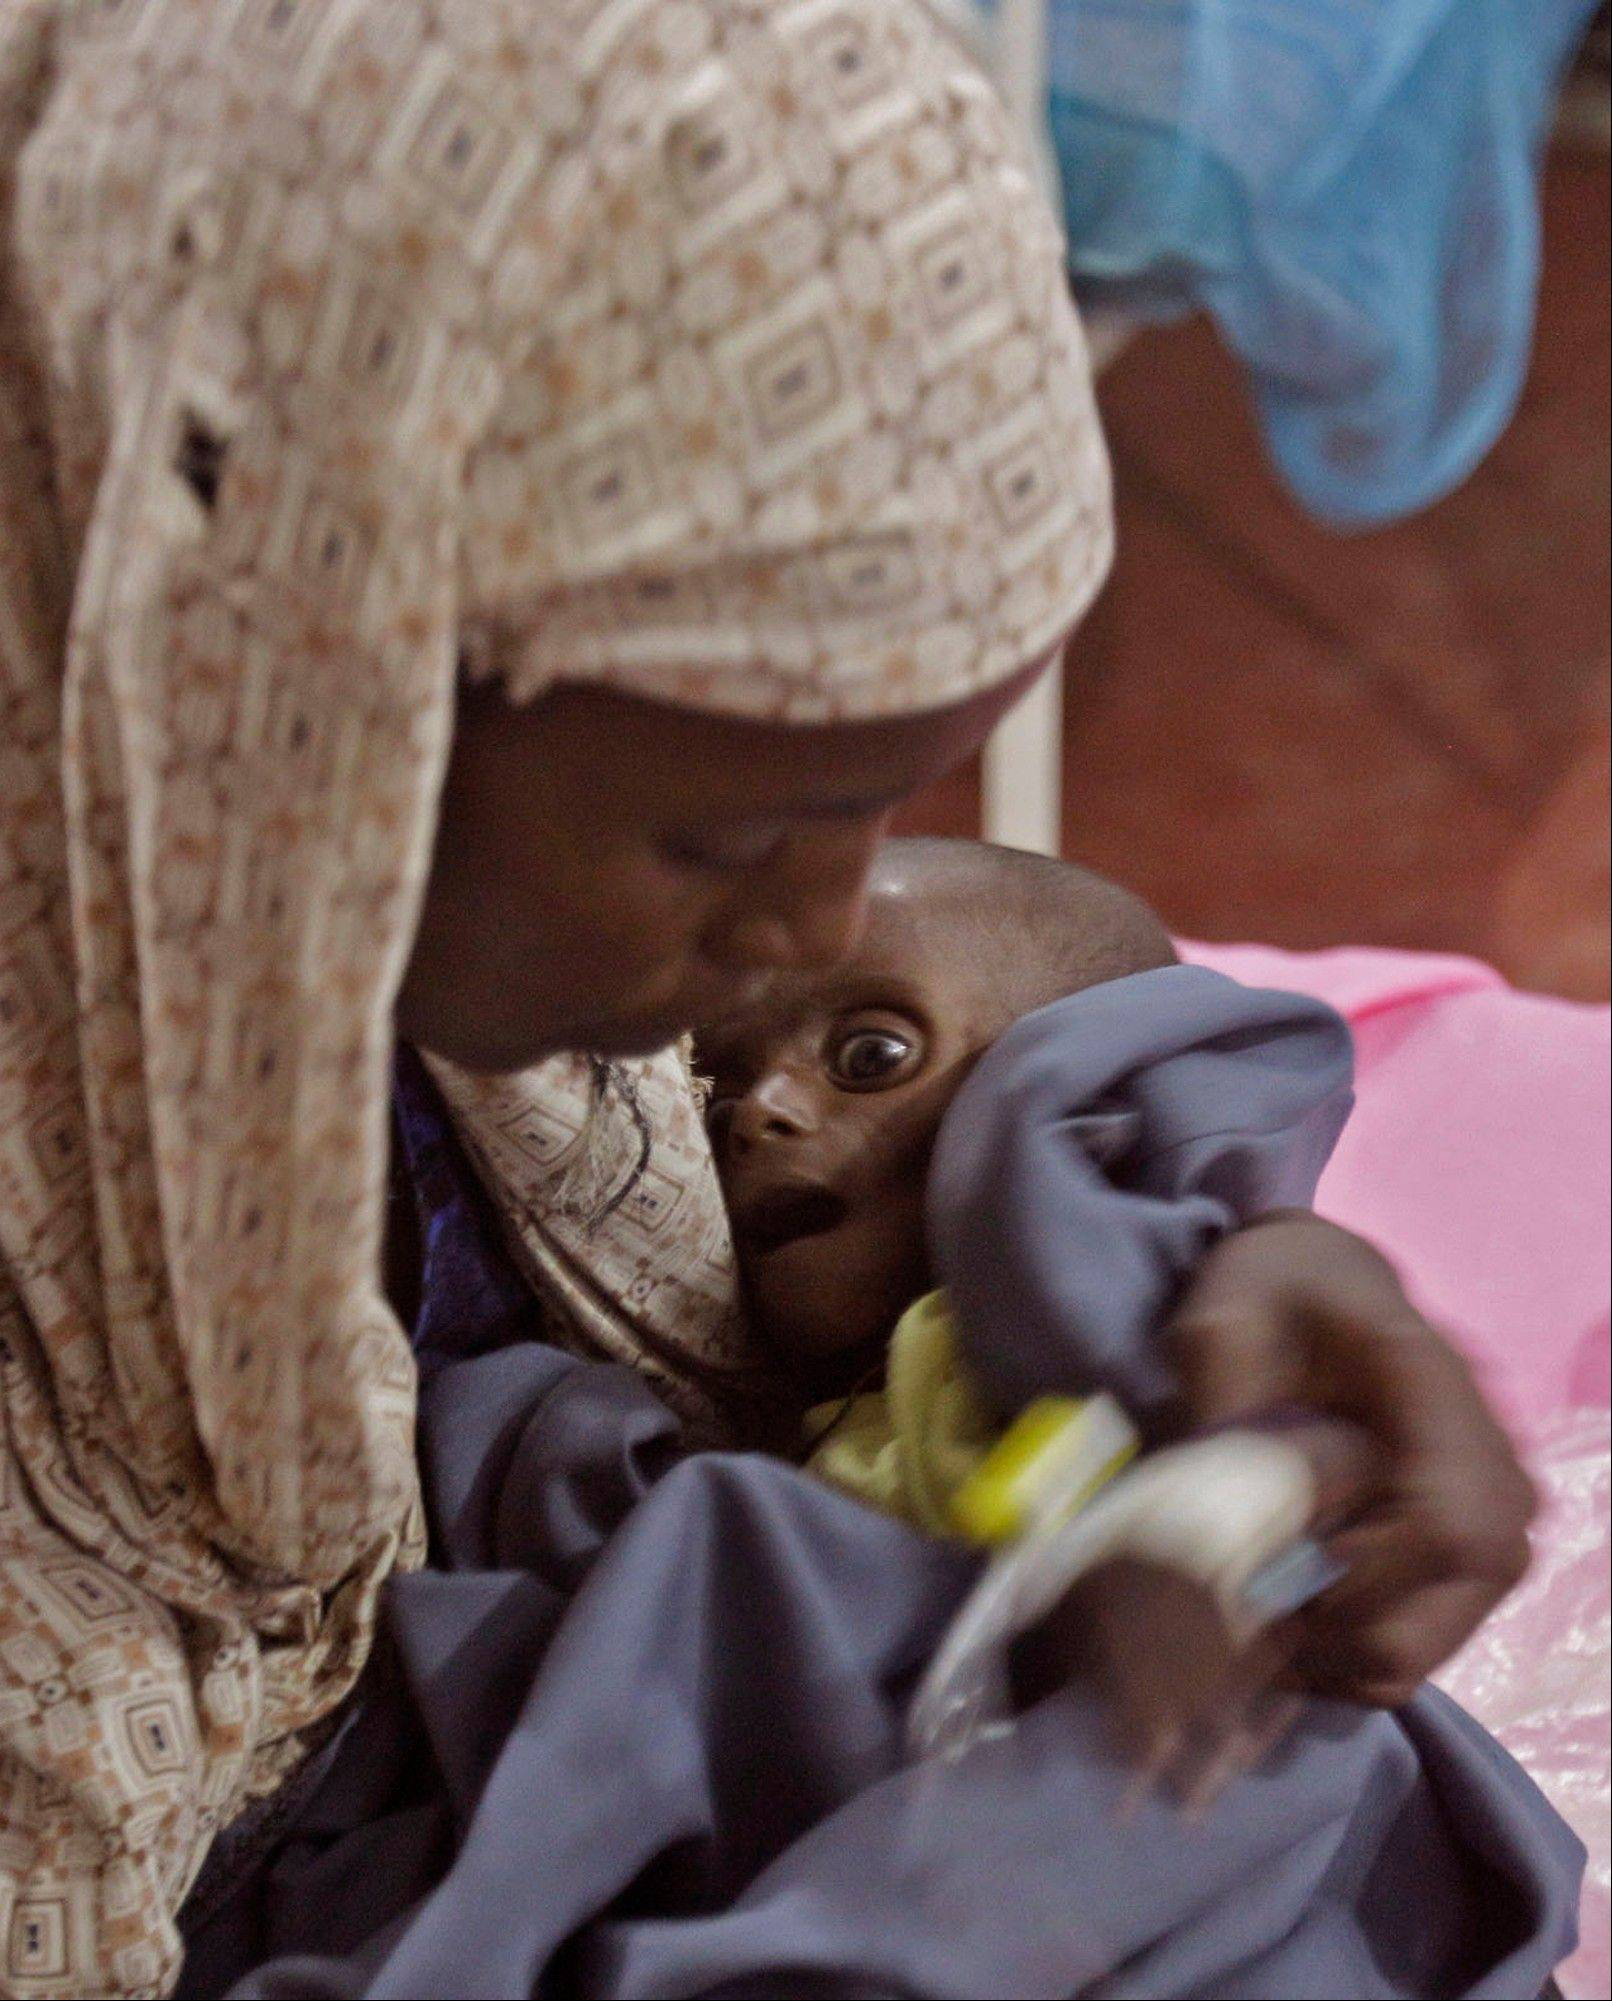 Asiah Dagane holds Mihag Gedi Farah, her 7-month-old child with a weight of 7 pounds, 8 ounces, at a field hospital of the International Rescue Committee in Dadaab, Kenya.